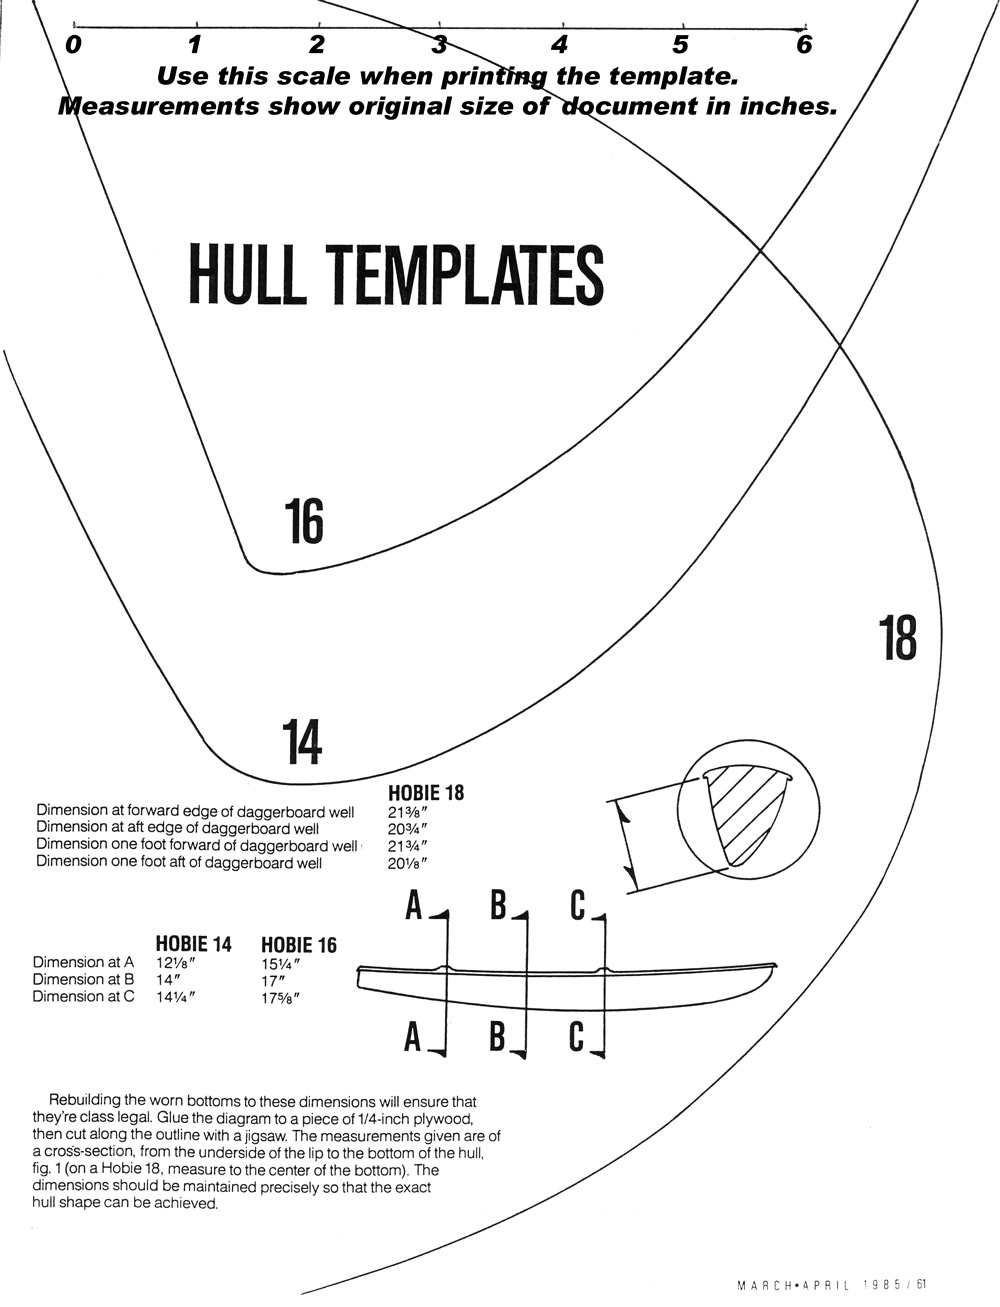 hight resolution of keel shape templates hobie 14 16 and 18